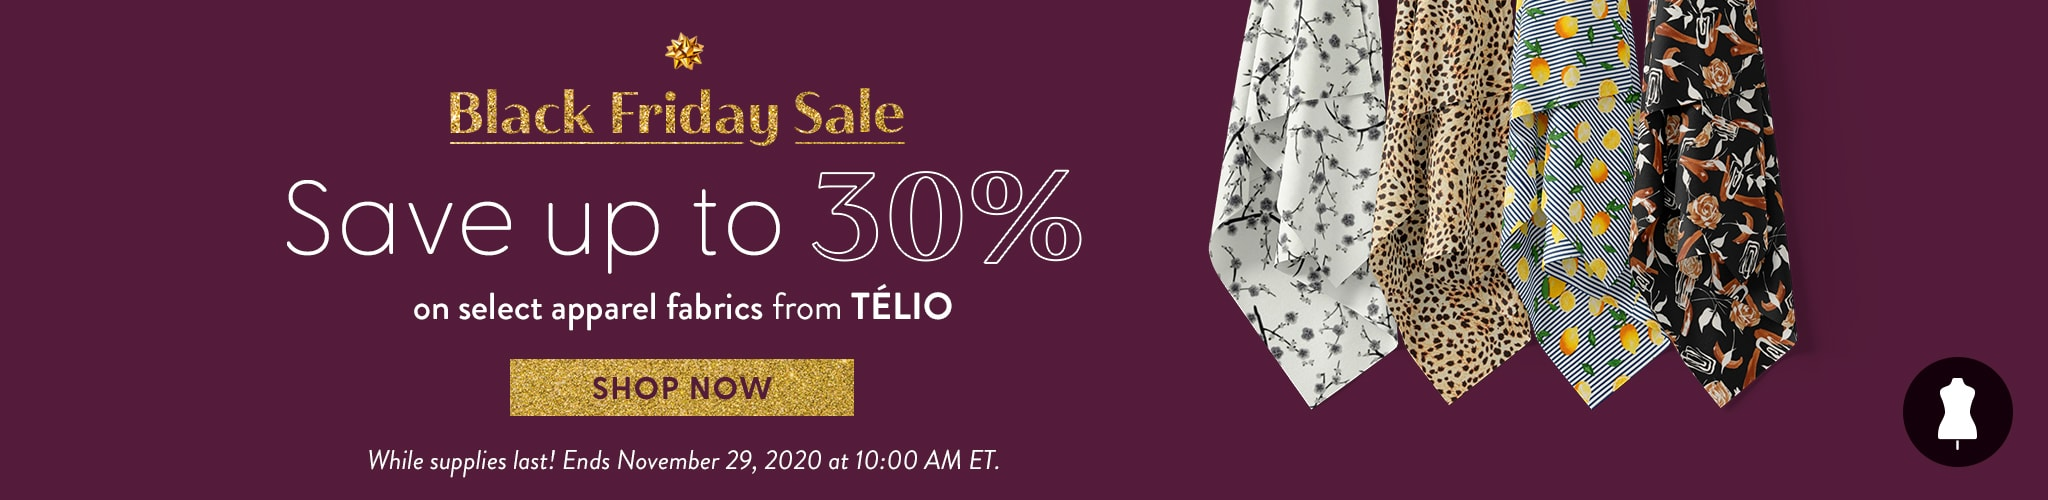 Telio Black Friday Sale